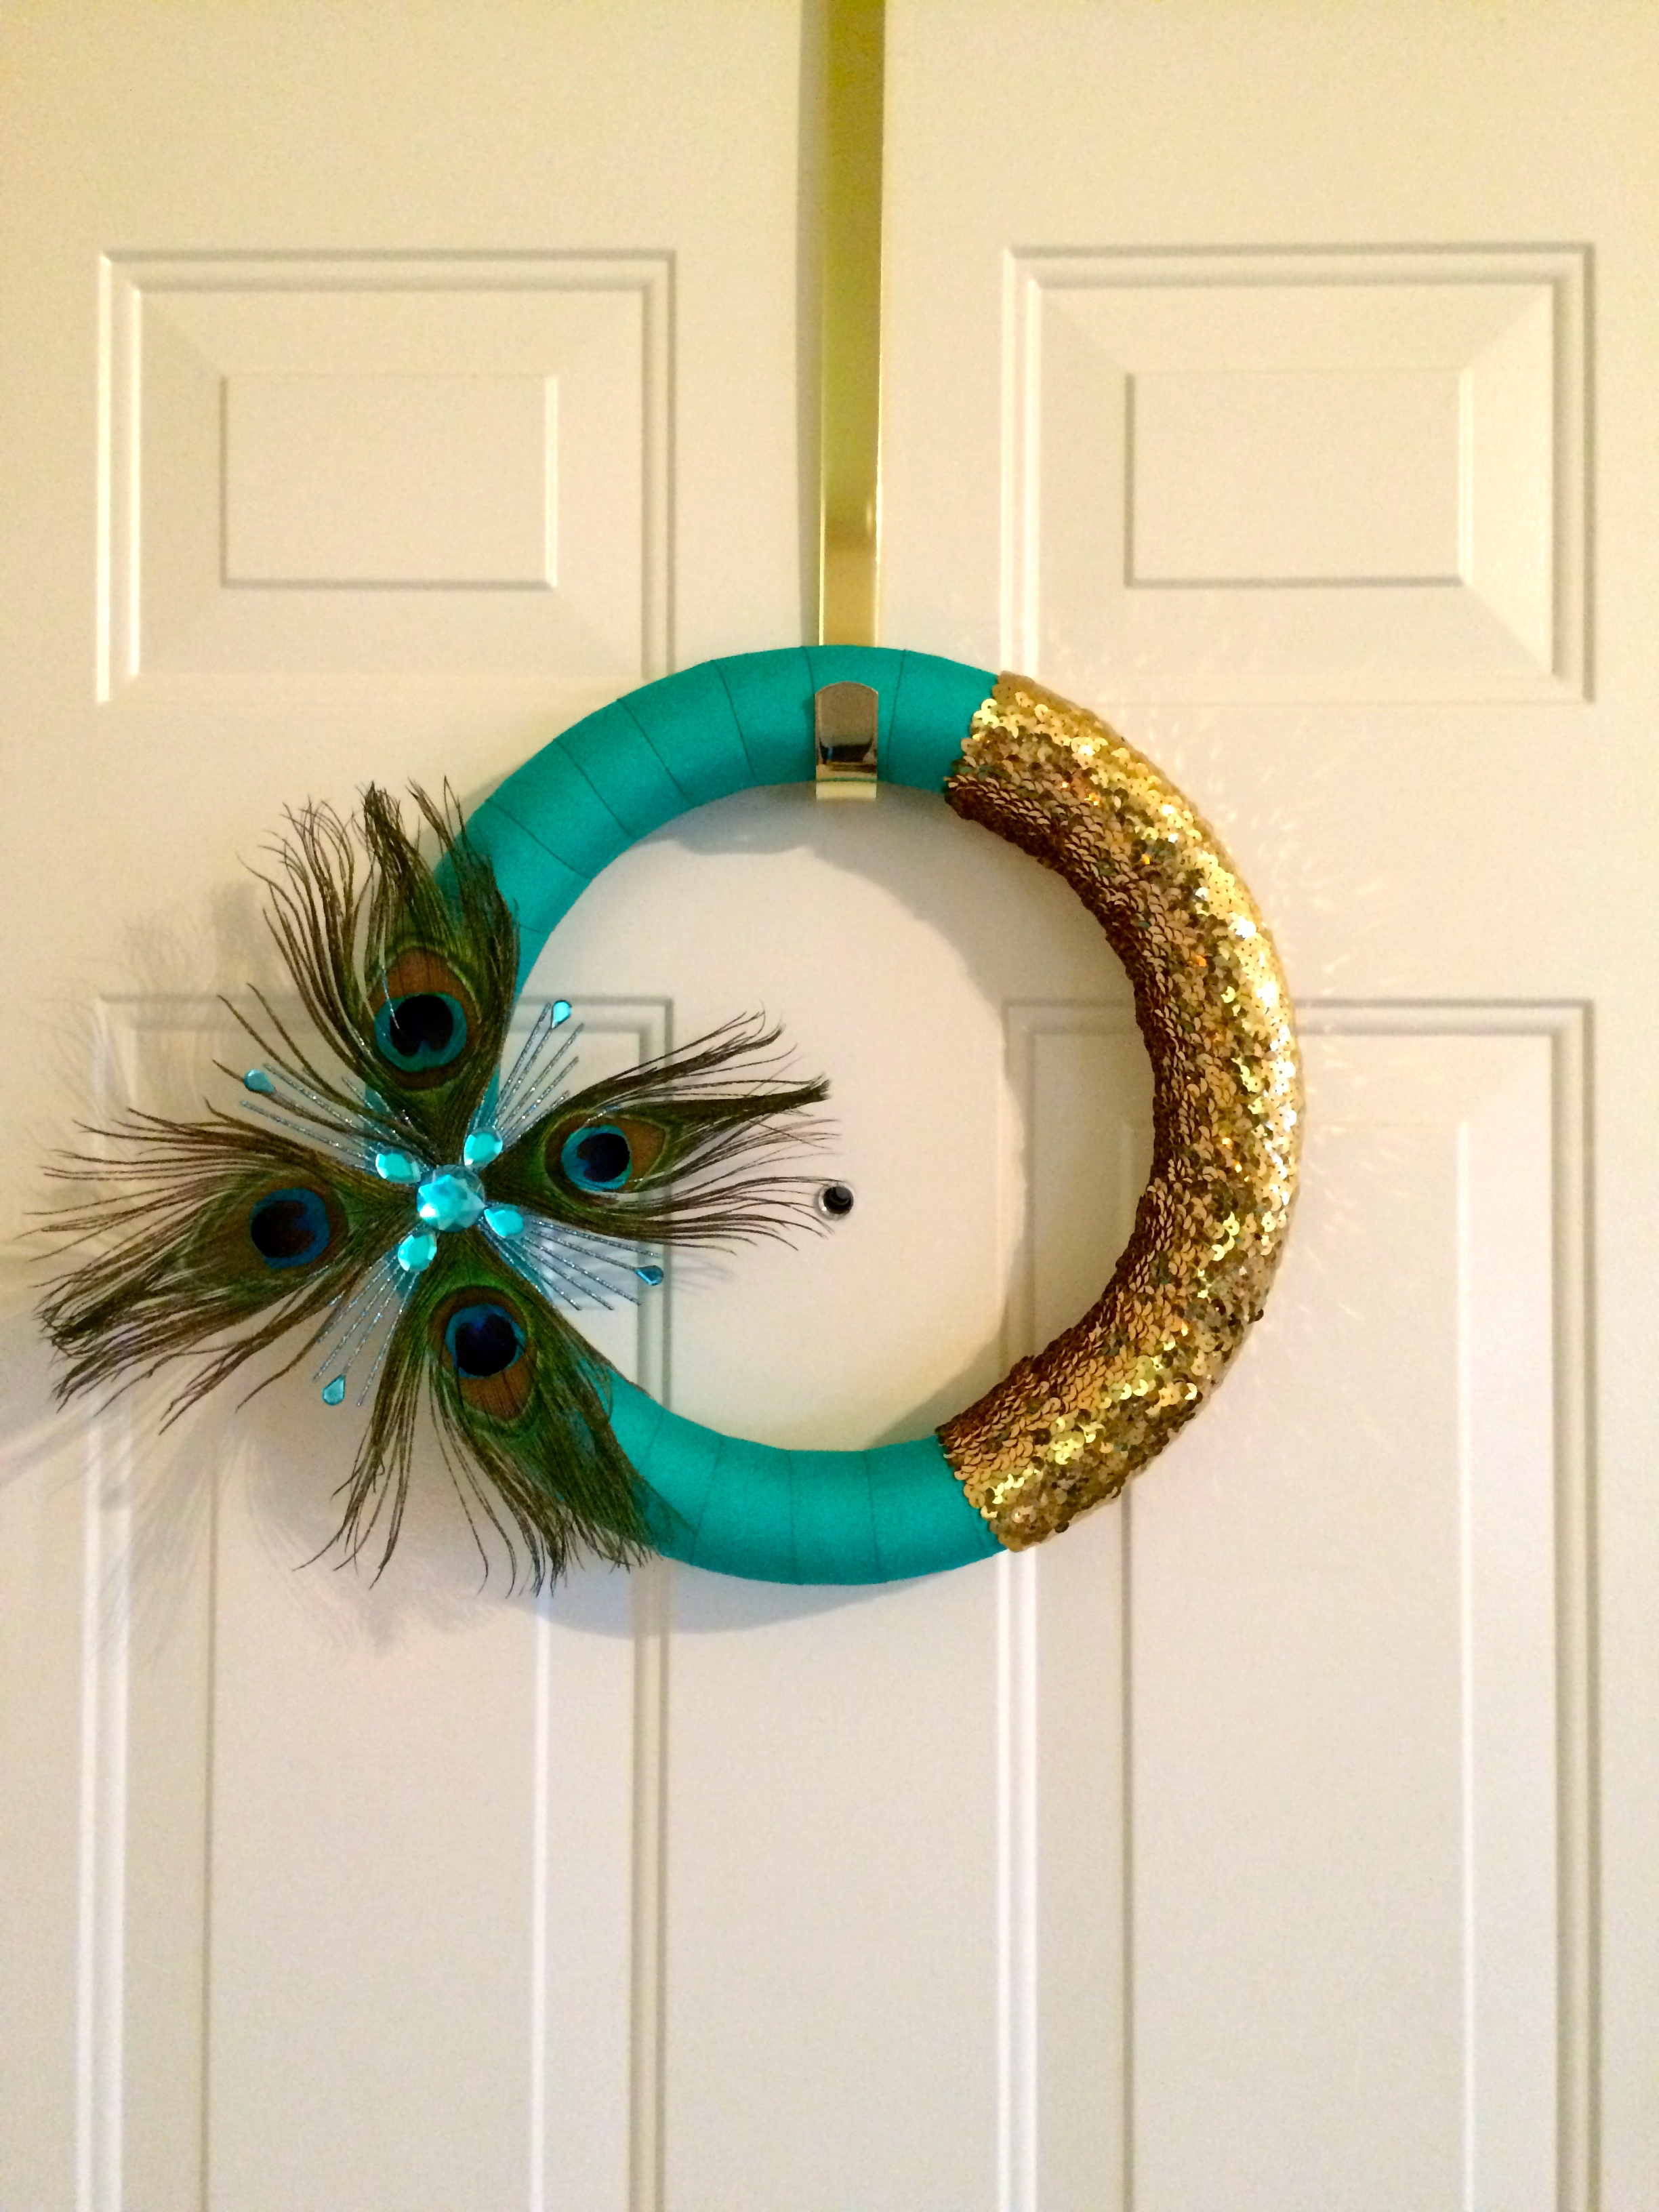 My DIY Peacock Feather Holiday Wreath